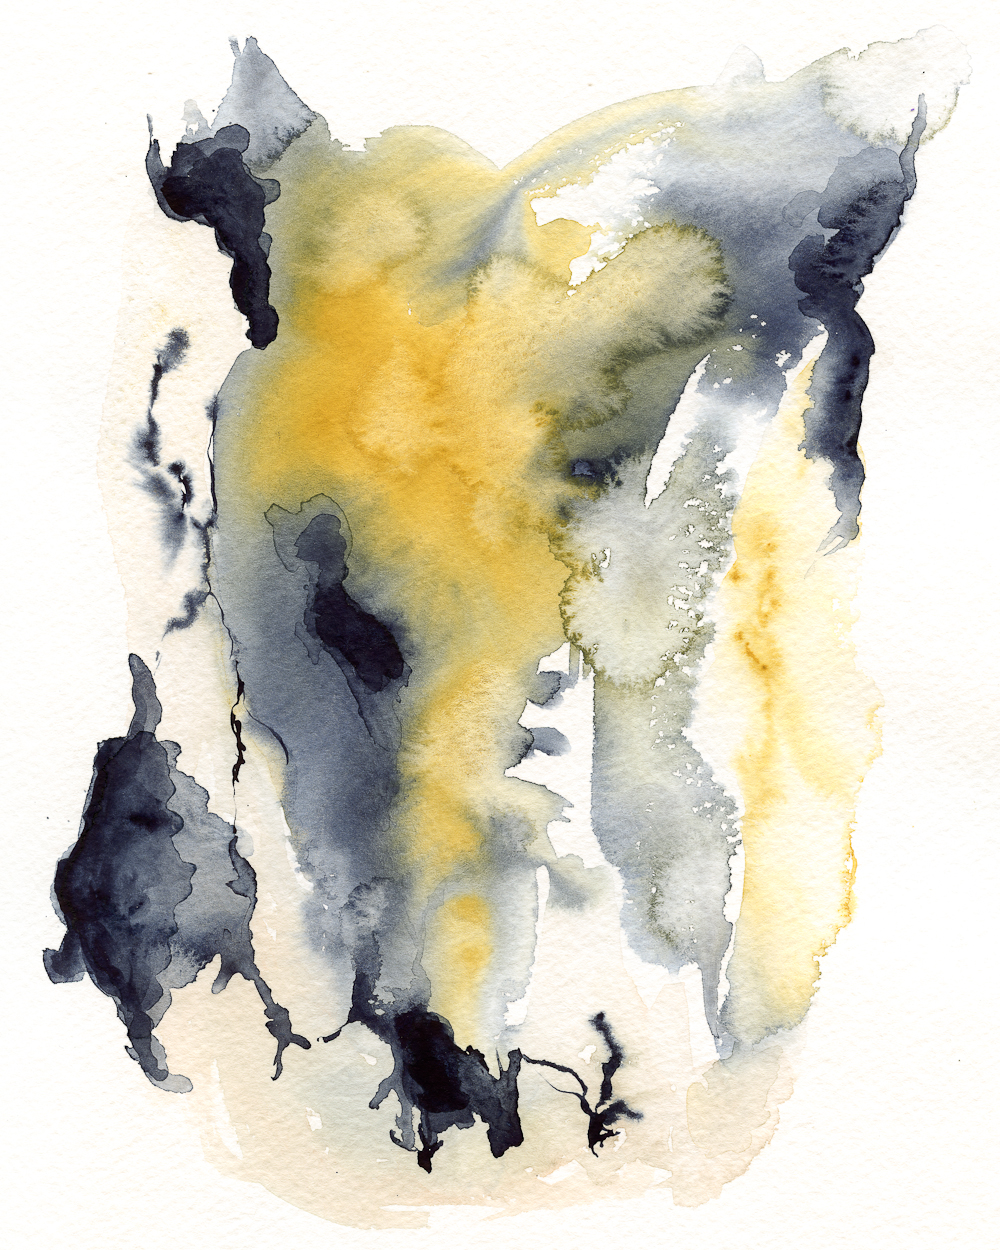 watercolor003.jpg